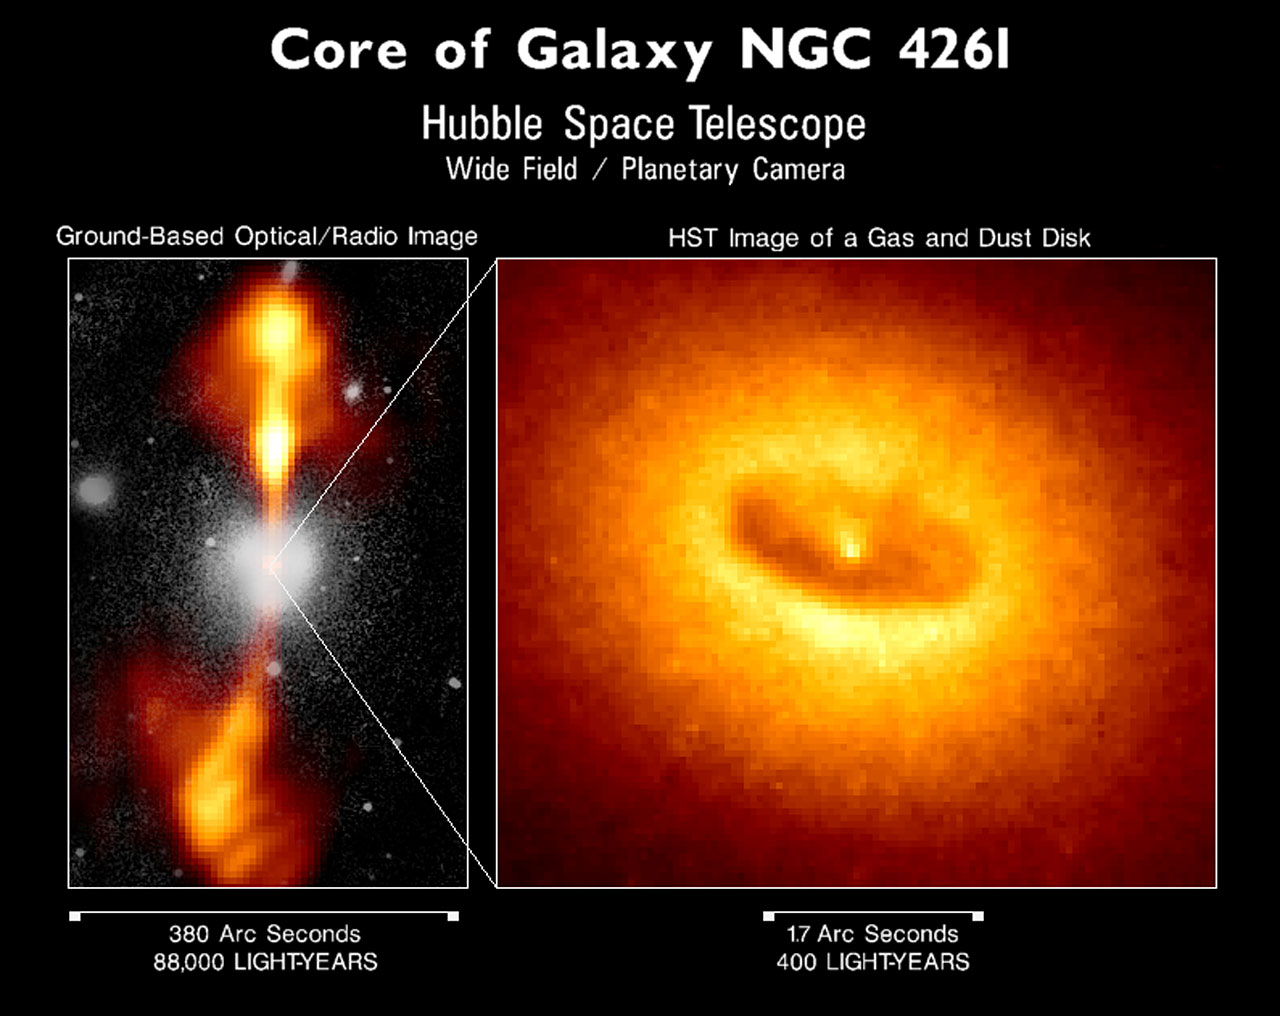 Core of Galaxy NGC 4261